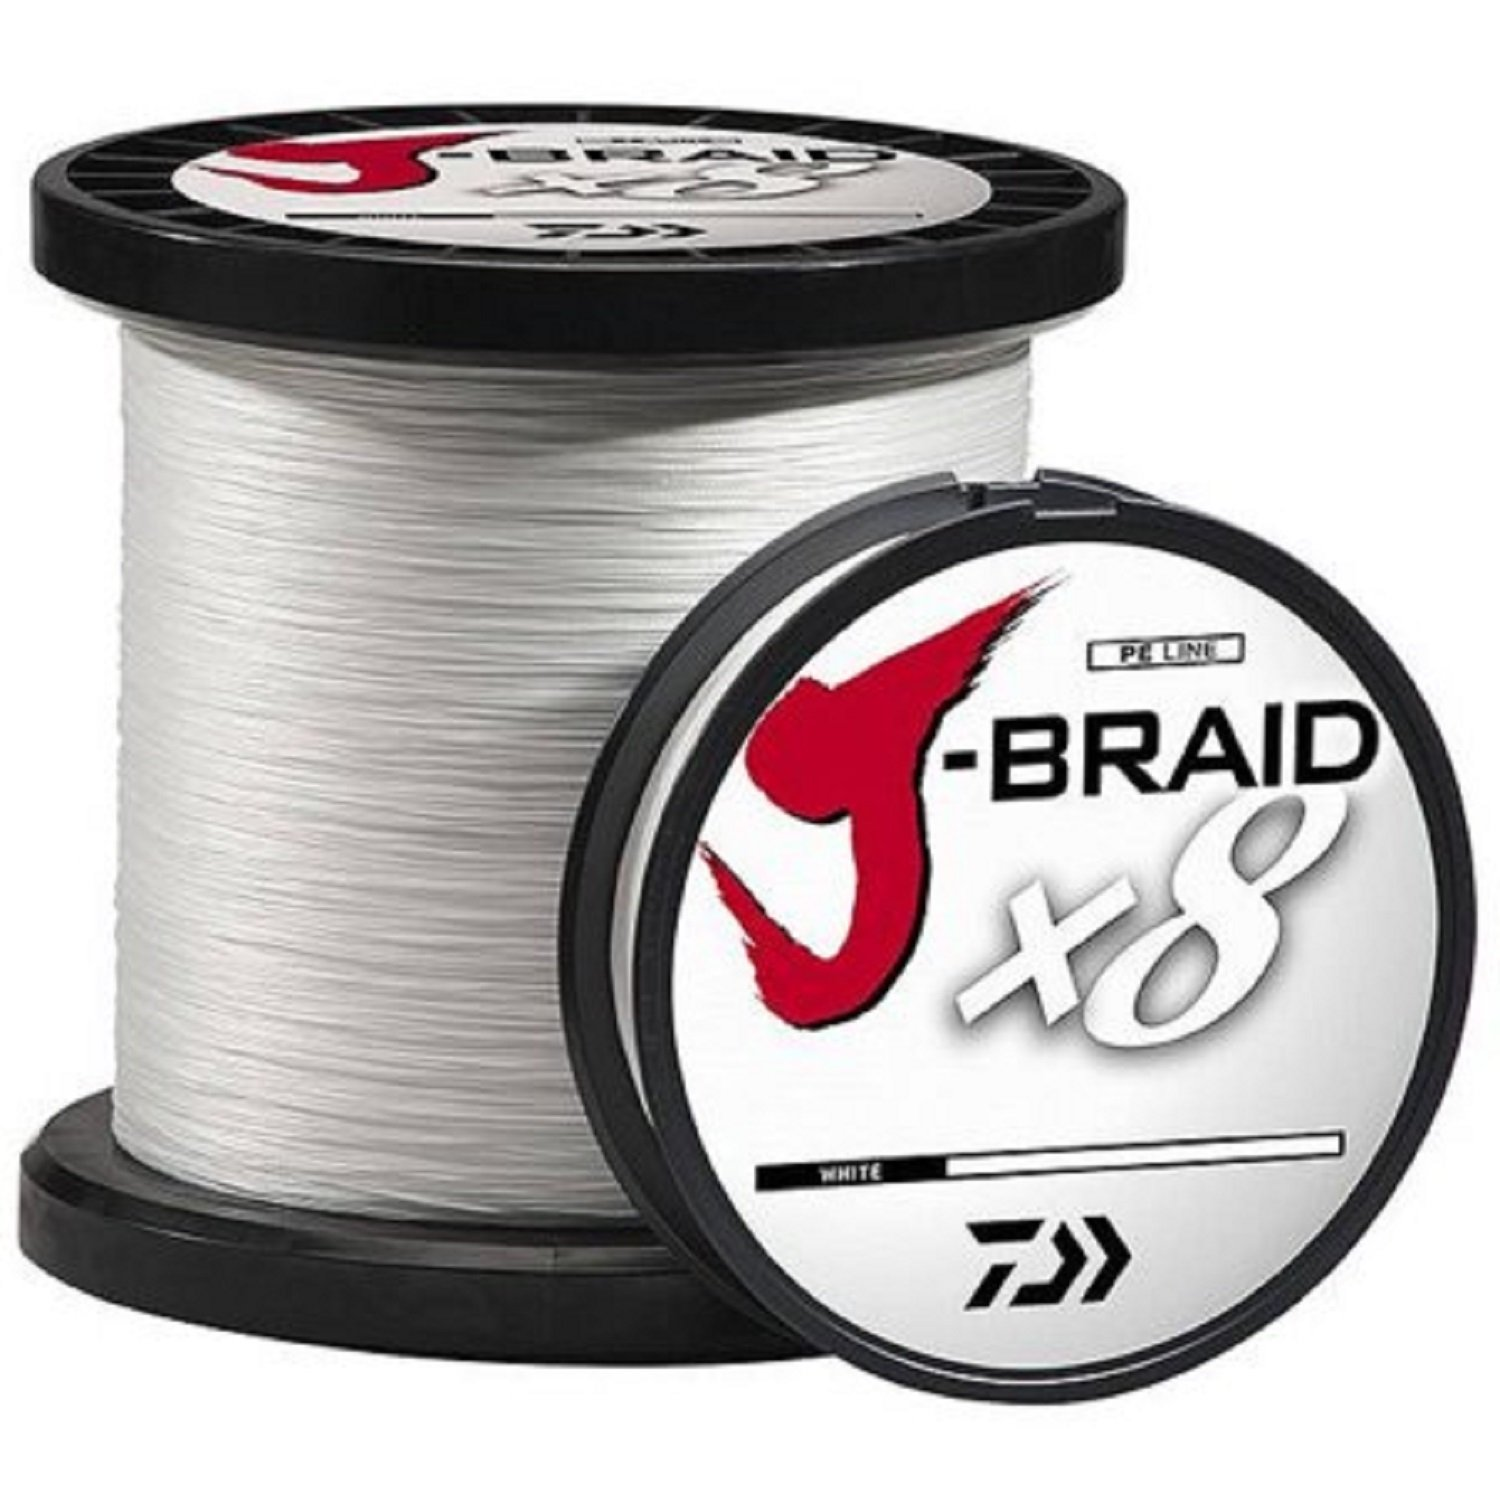 Daiwa J-Braidx8 JB8U150-2500WH 150 lbs Test, White, 2500 Meters/2735 Yards by Daiwa